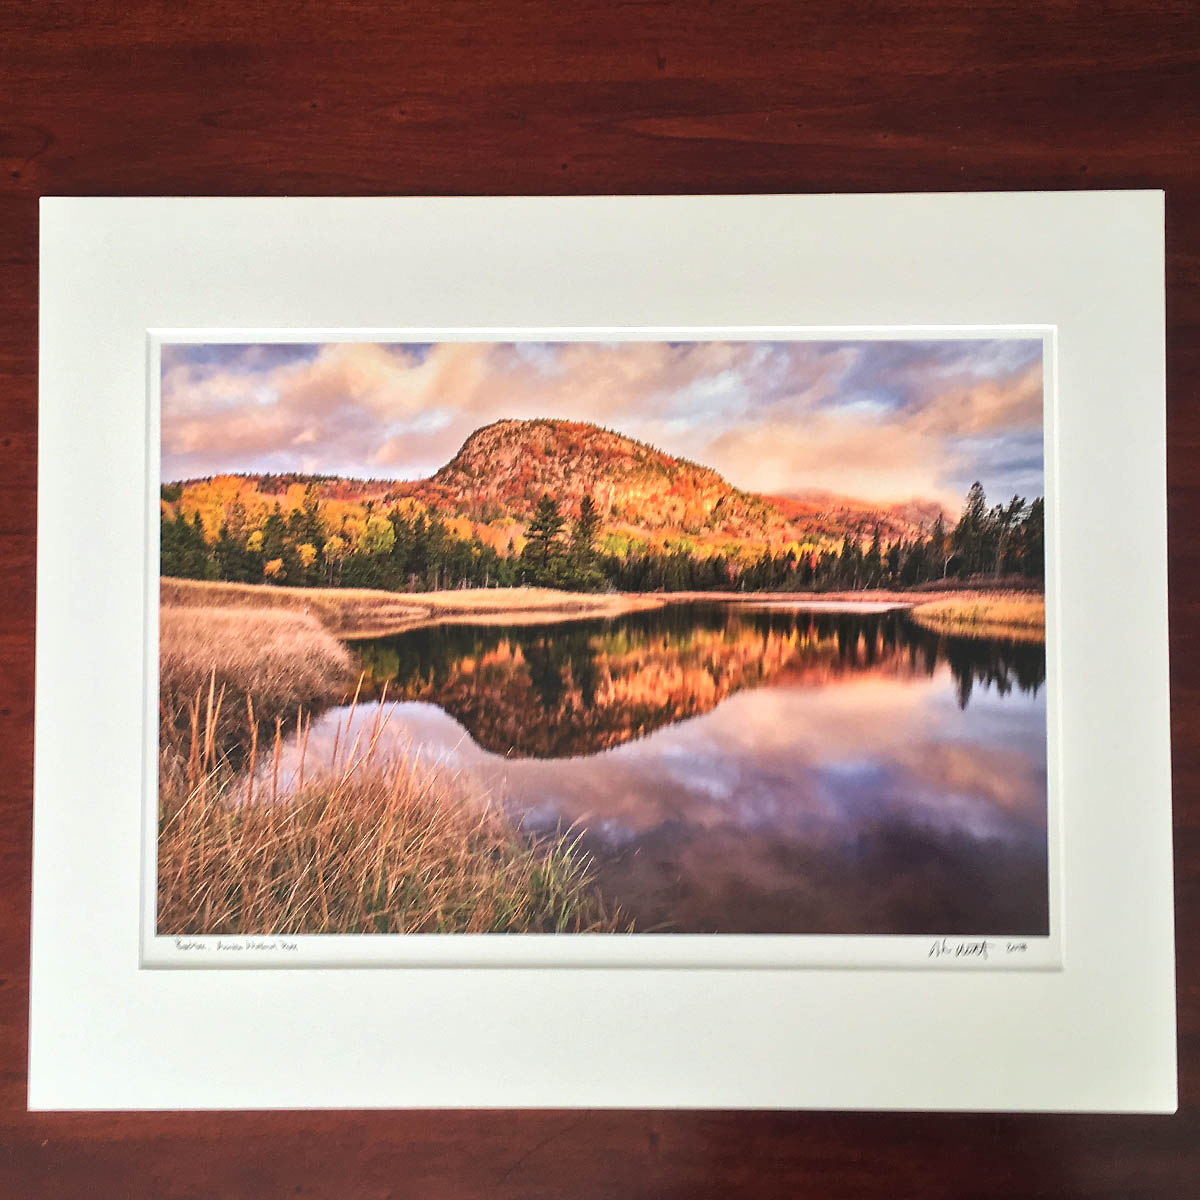 """Beehive"" by Howie Motenko - This stunning photo print, provided by the Cornman Family, is matted and ready to be framed. Local photographer Howie Motenko is known for capturing the beauty of this island we are lucky enough to call home, and this print in particular is the perfect example of that."